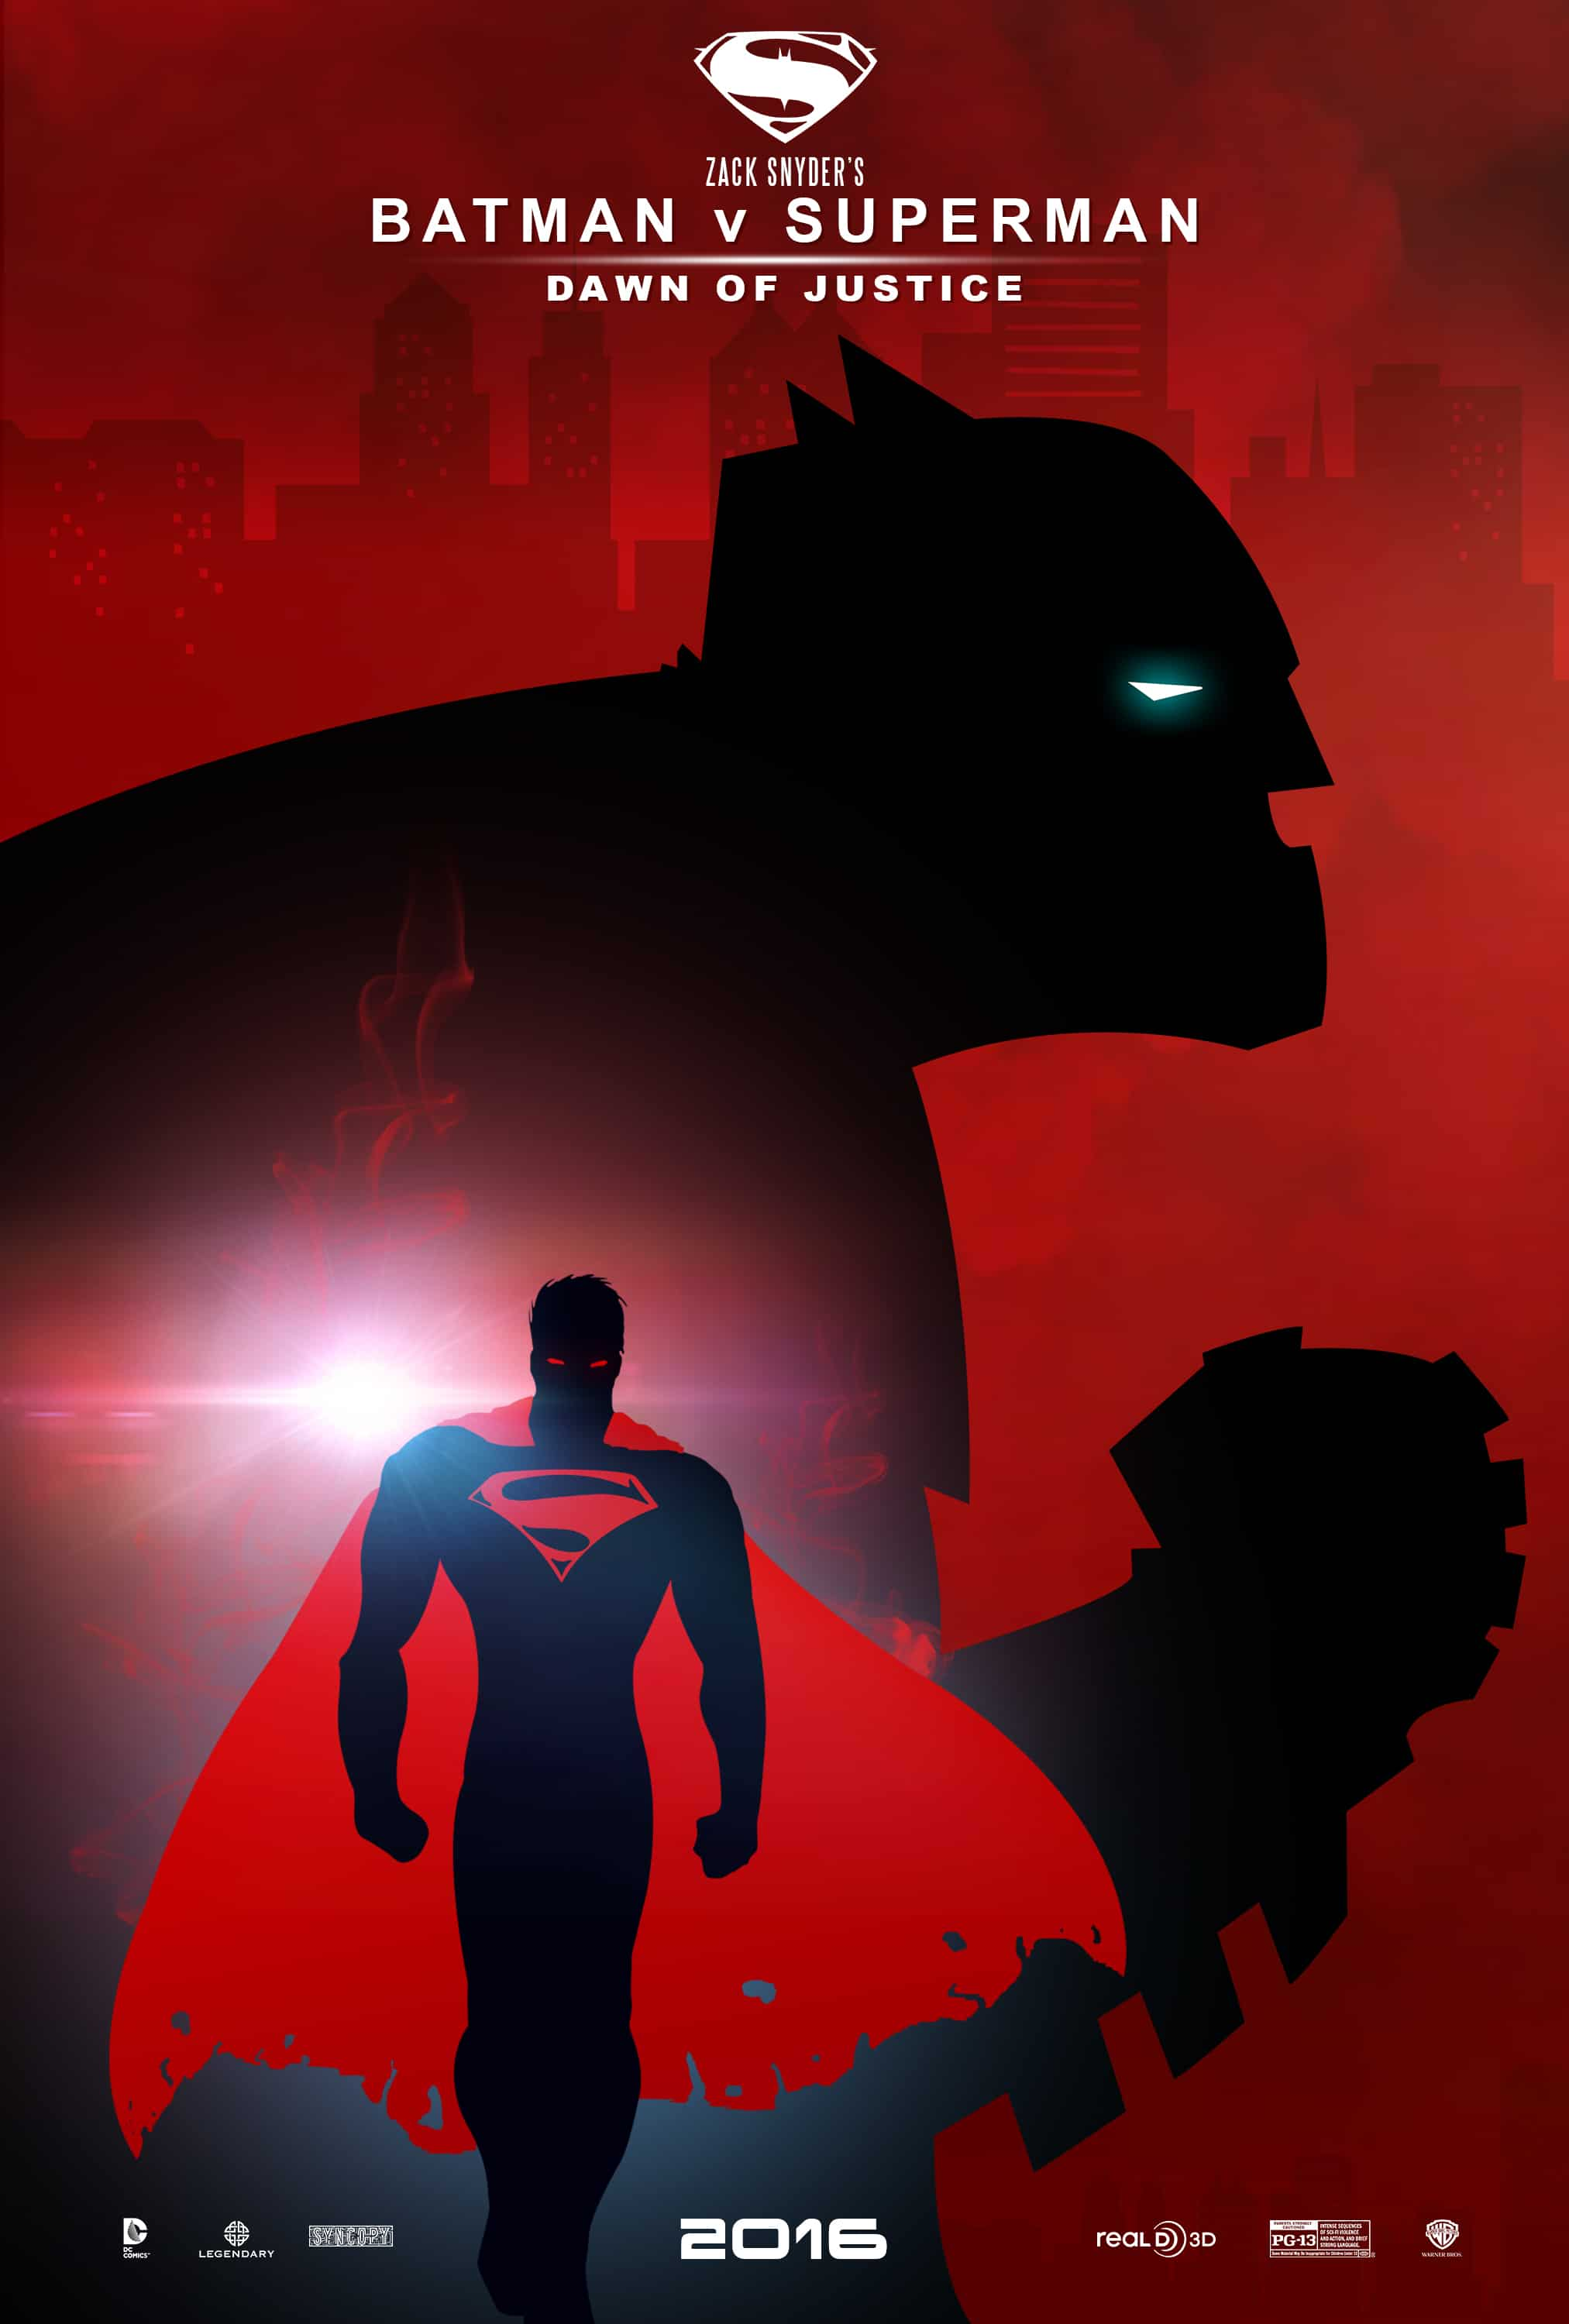 Batman-Vs-Superman-Posters-hd-printable-animation-cartoon-poster